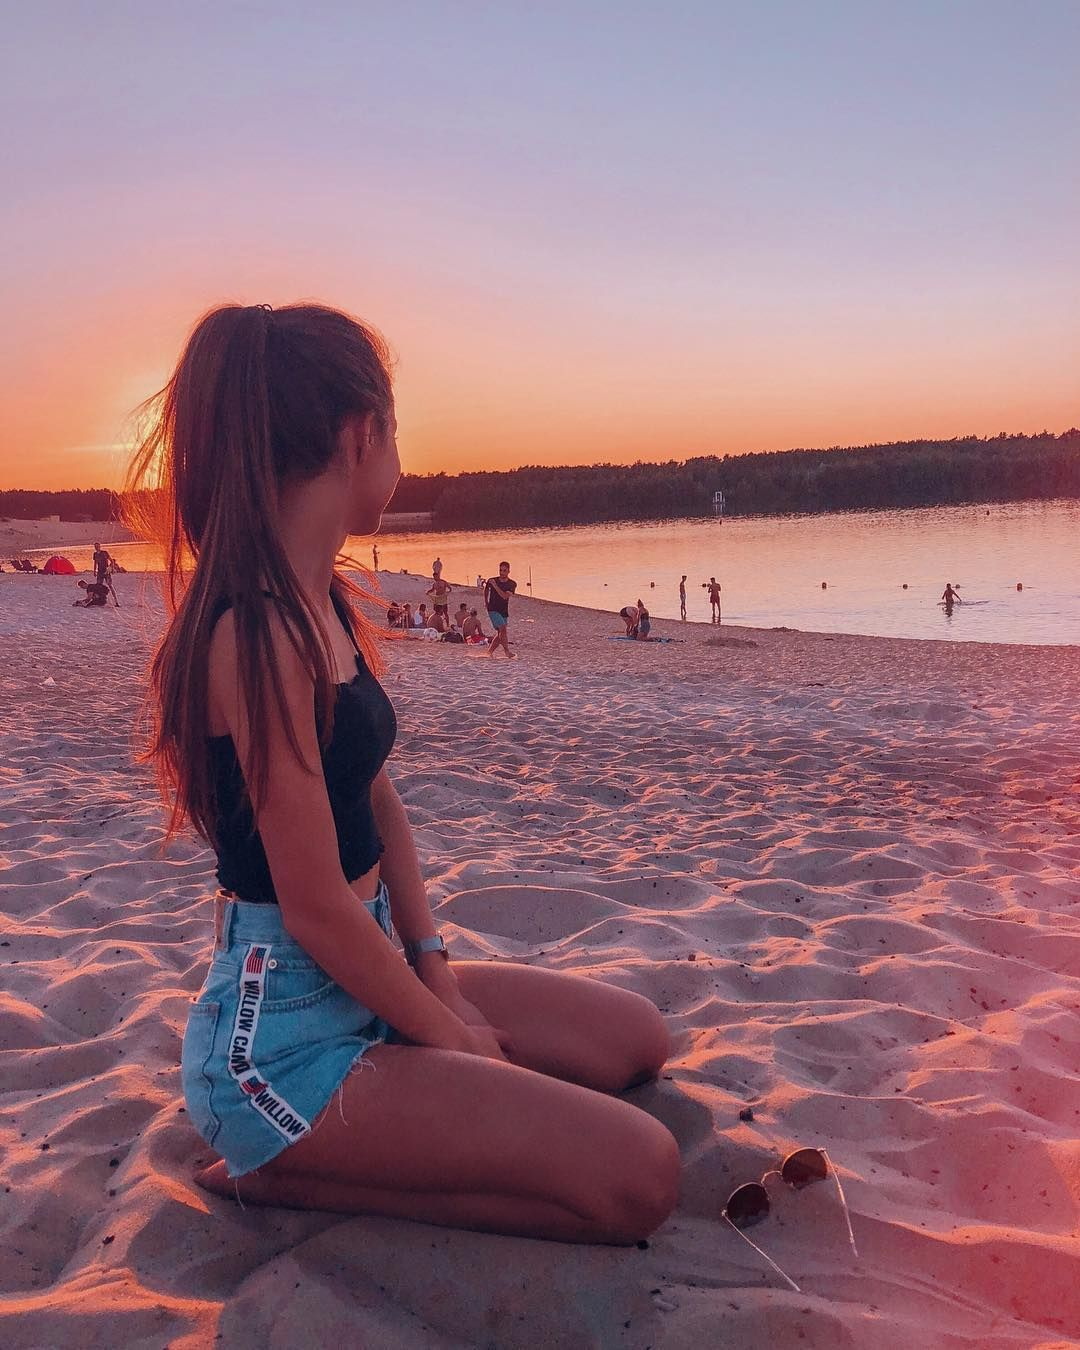 Catching Sunsets With You Americanstyle Hairsandstyles Ootdmagazine Ootd Beach Sunset Summeringermany Instagram Pose Beach Photography Beach Photoshoot